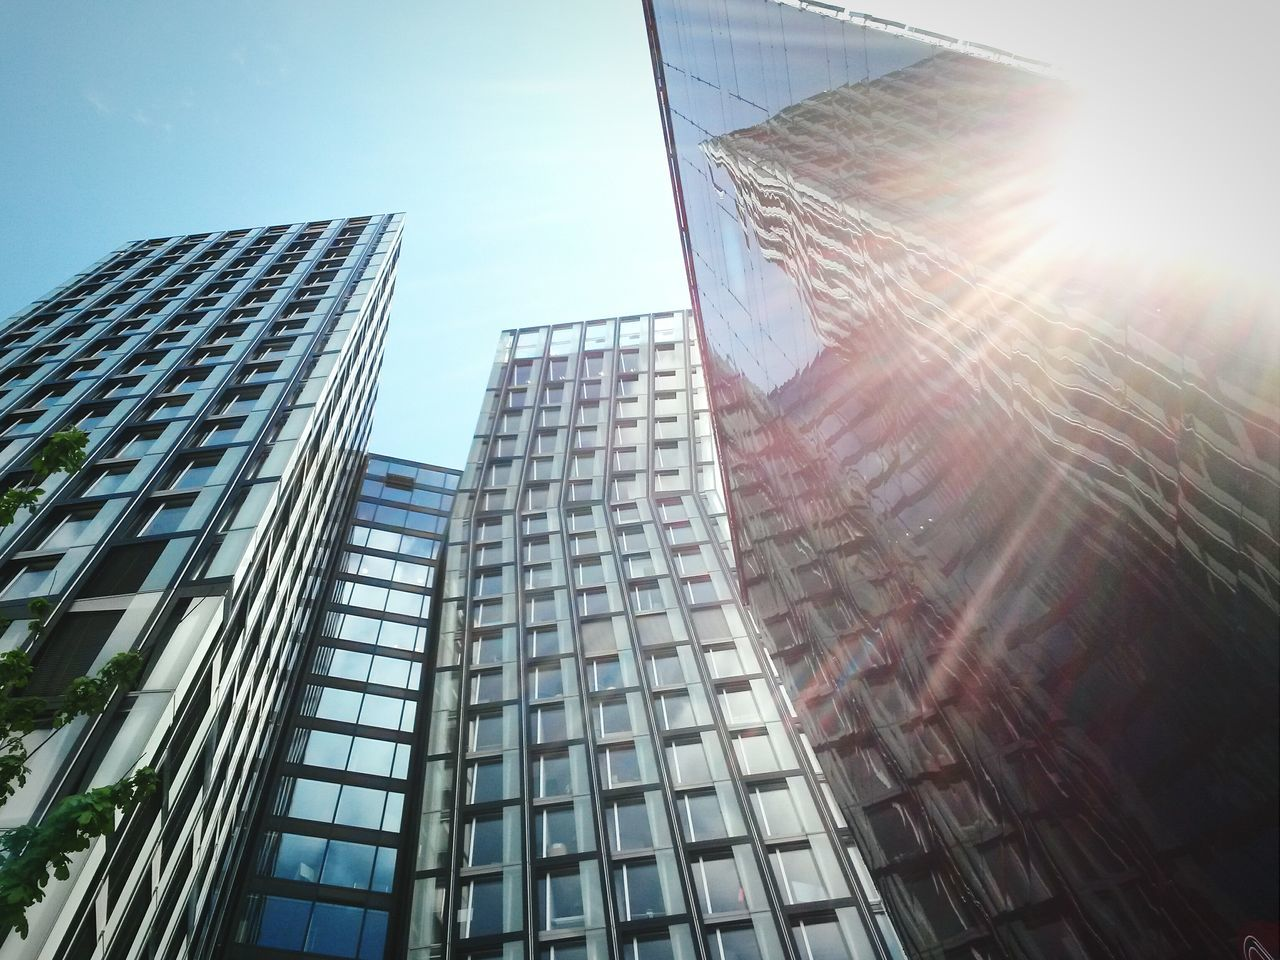 The Architect - 2016 EyeEm Awards Built Structure Building Up Close Street Photography Showing Imperfection Canonphotography No People Architecture Architectural Detail Architecture_collection Sunny Sky_collection Mirror Picture Mirror Light Trails Hamburg Reeperbahn  Windows Häuserfassade Hochhaus Gray Square Fine Art Photography Pivotal Ideas Eyeemphoto